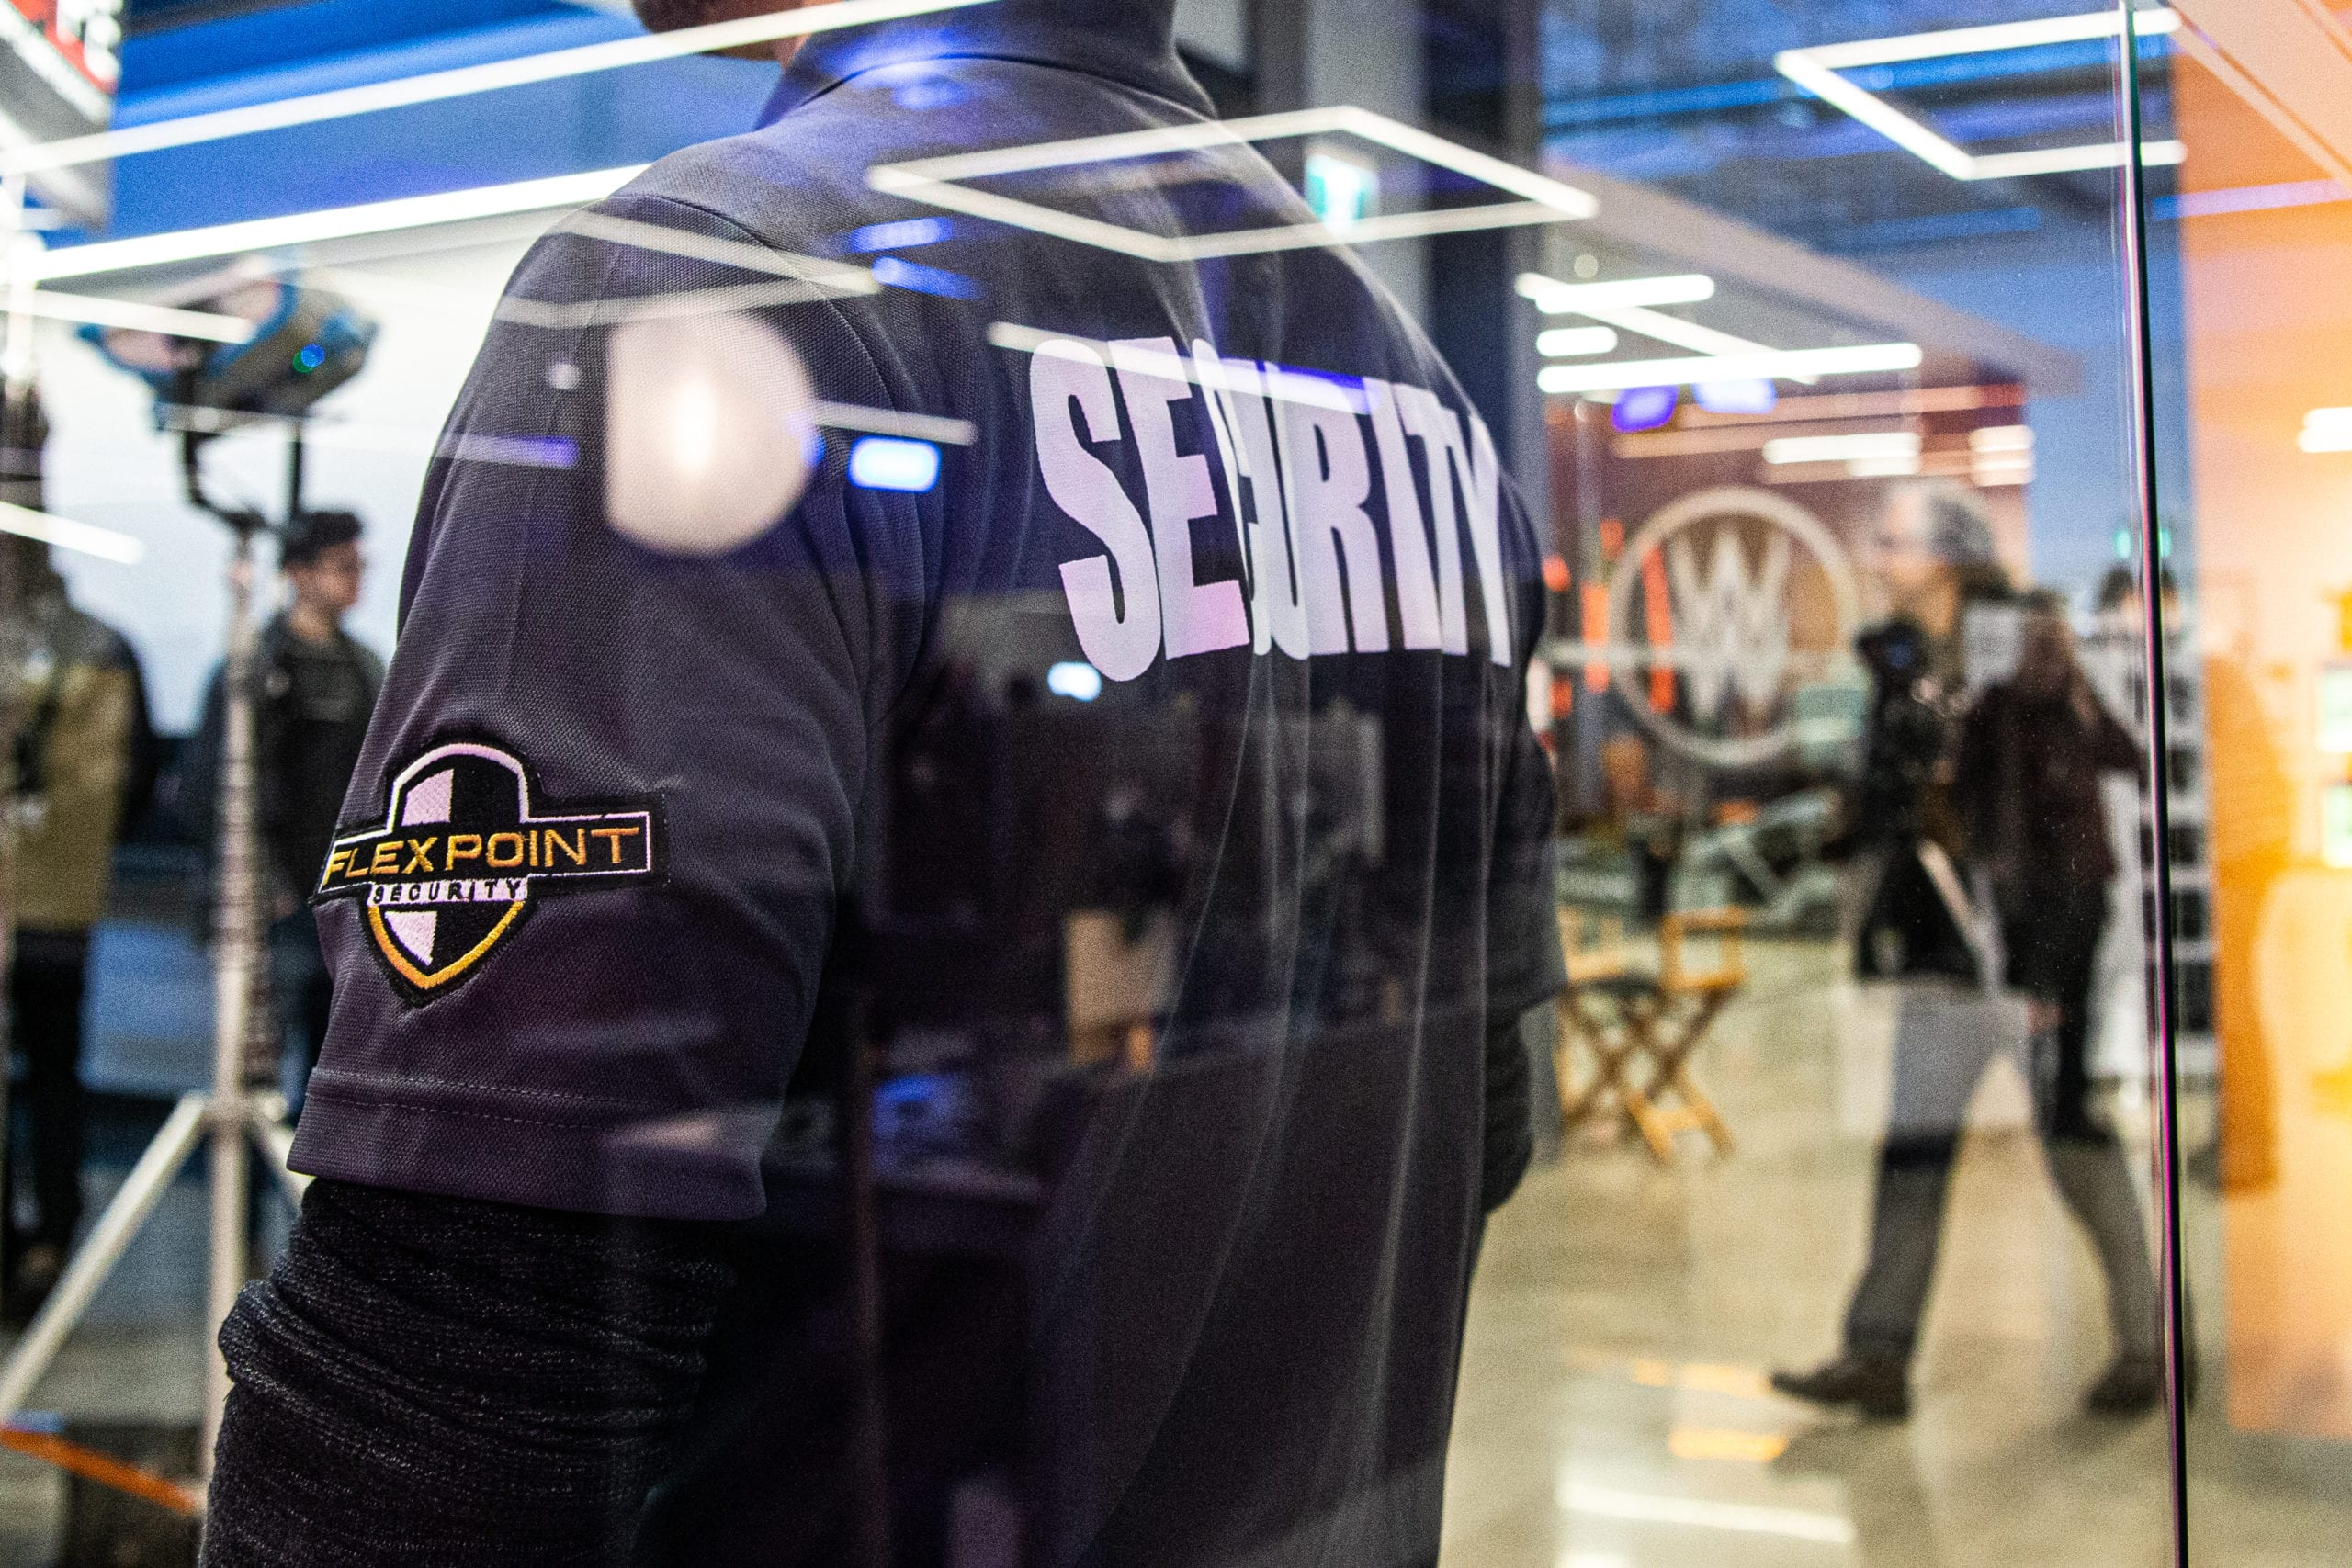 Flex Point Security guard providing event security services on set of a video shoot